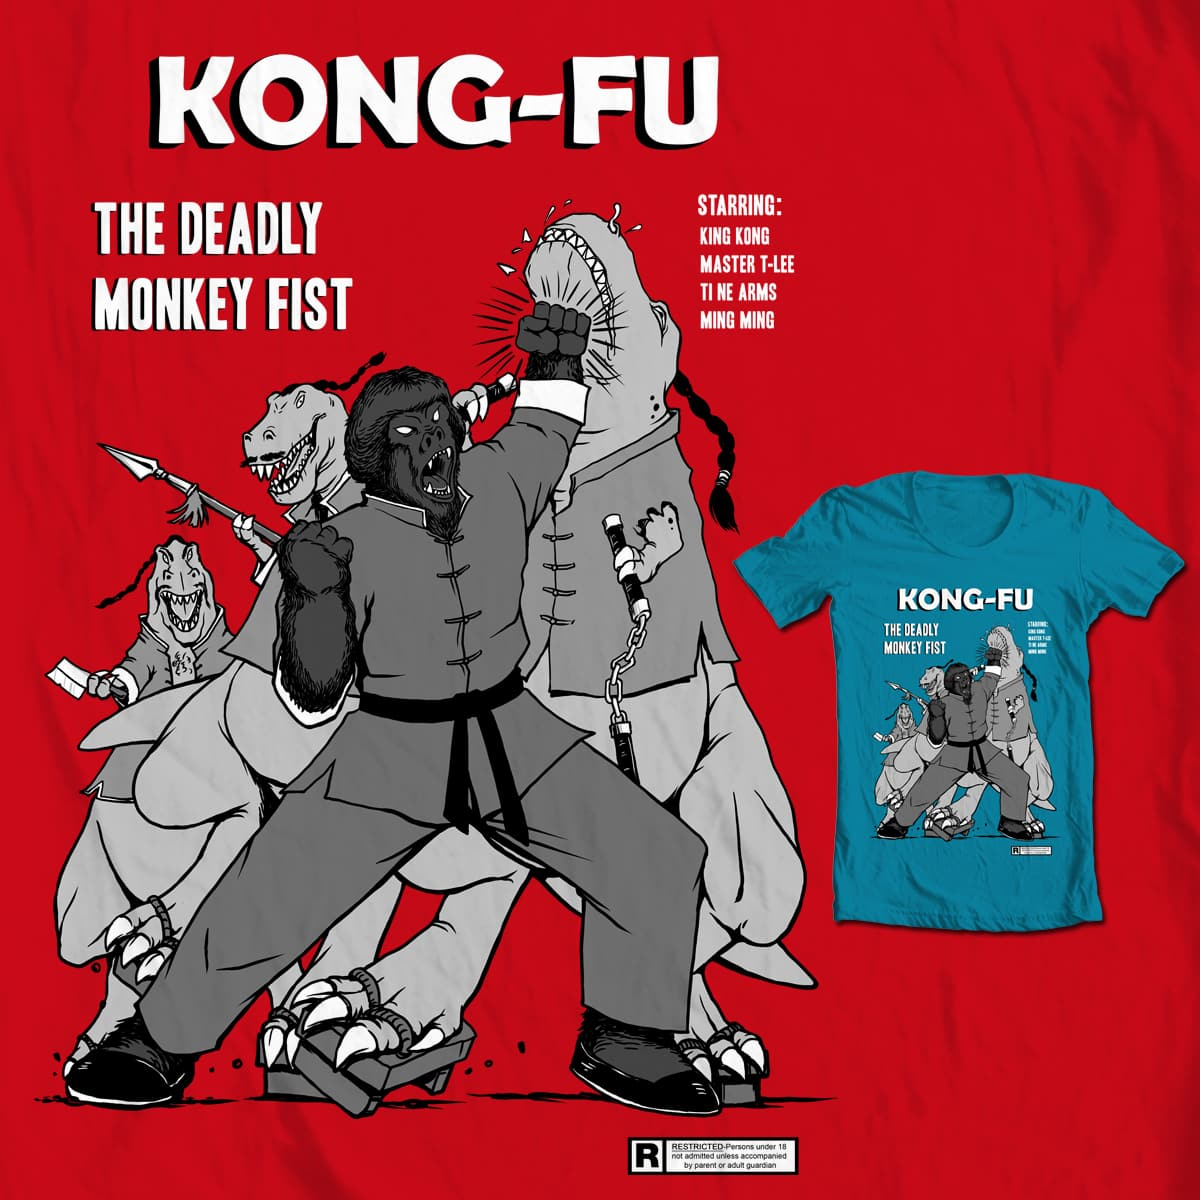 Kong-Fu by Doodle by Ninja! on Threadless